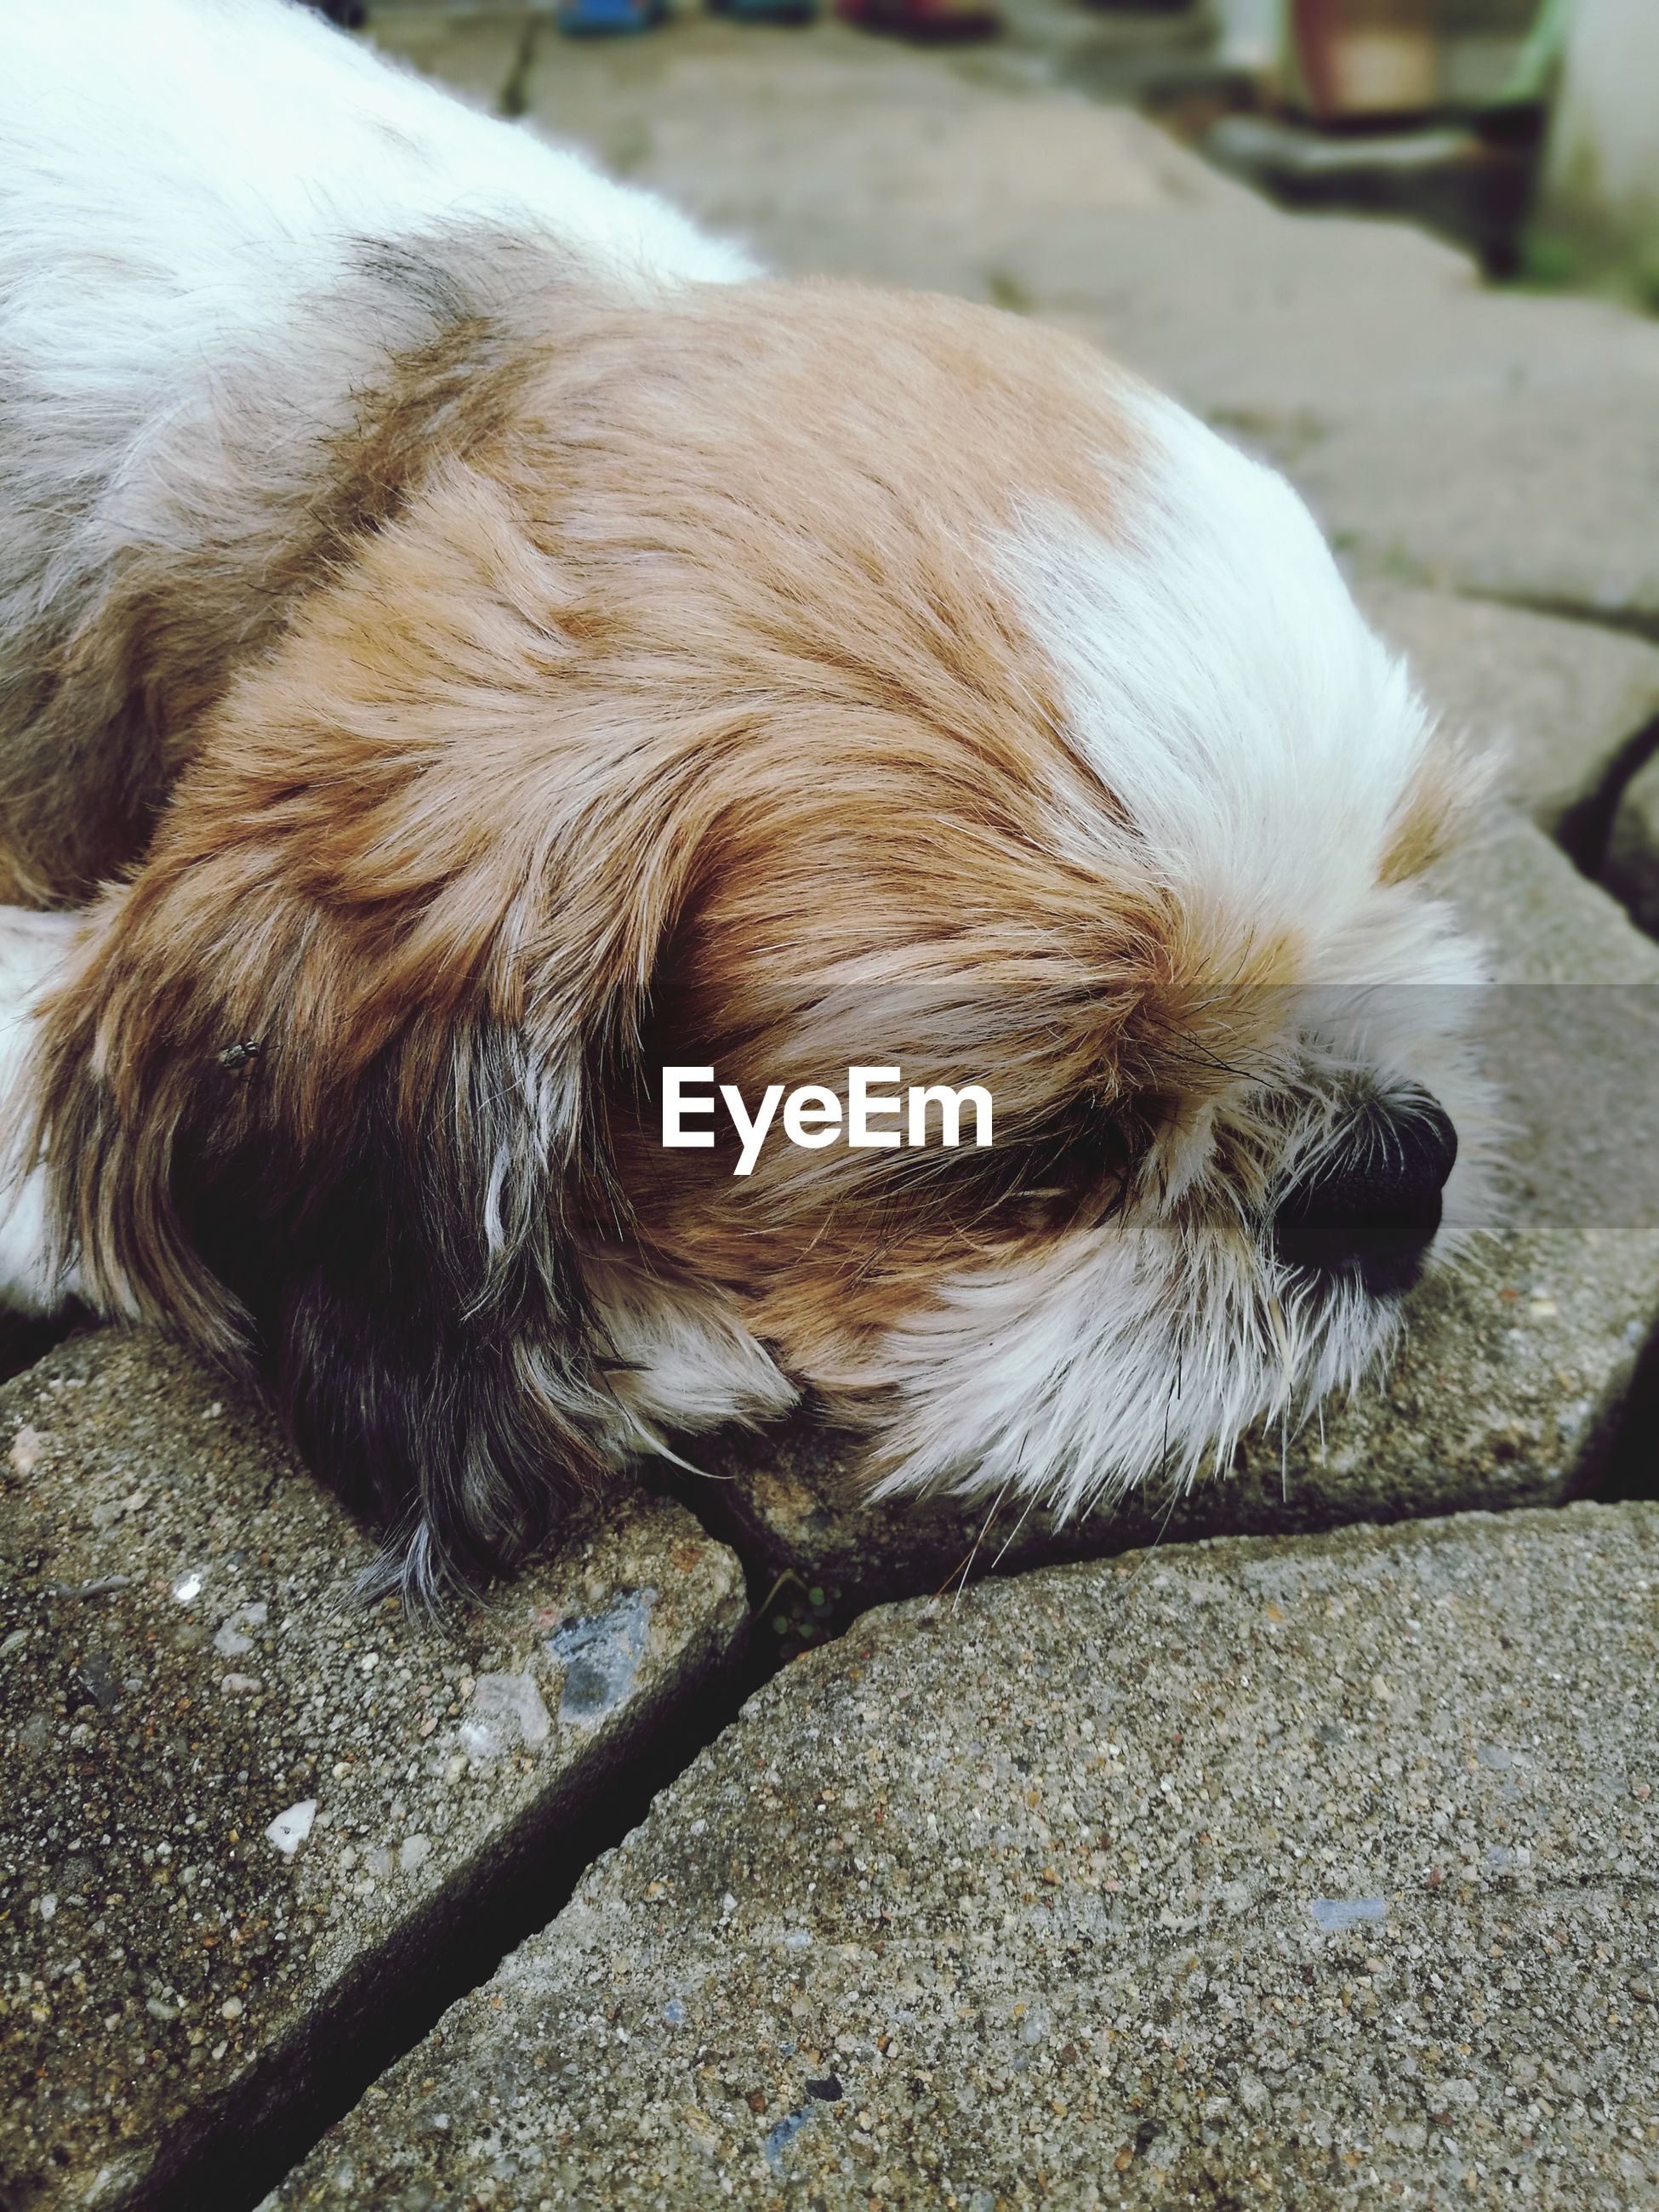 dog, one animal, pets, domestic animals, animal themes, mammal, animal hair, day, no people, outdoors, close-up